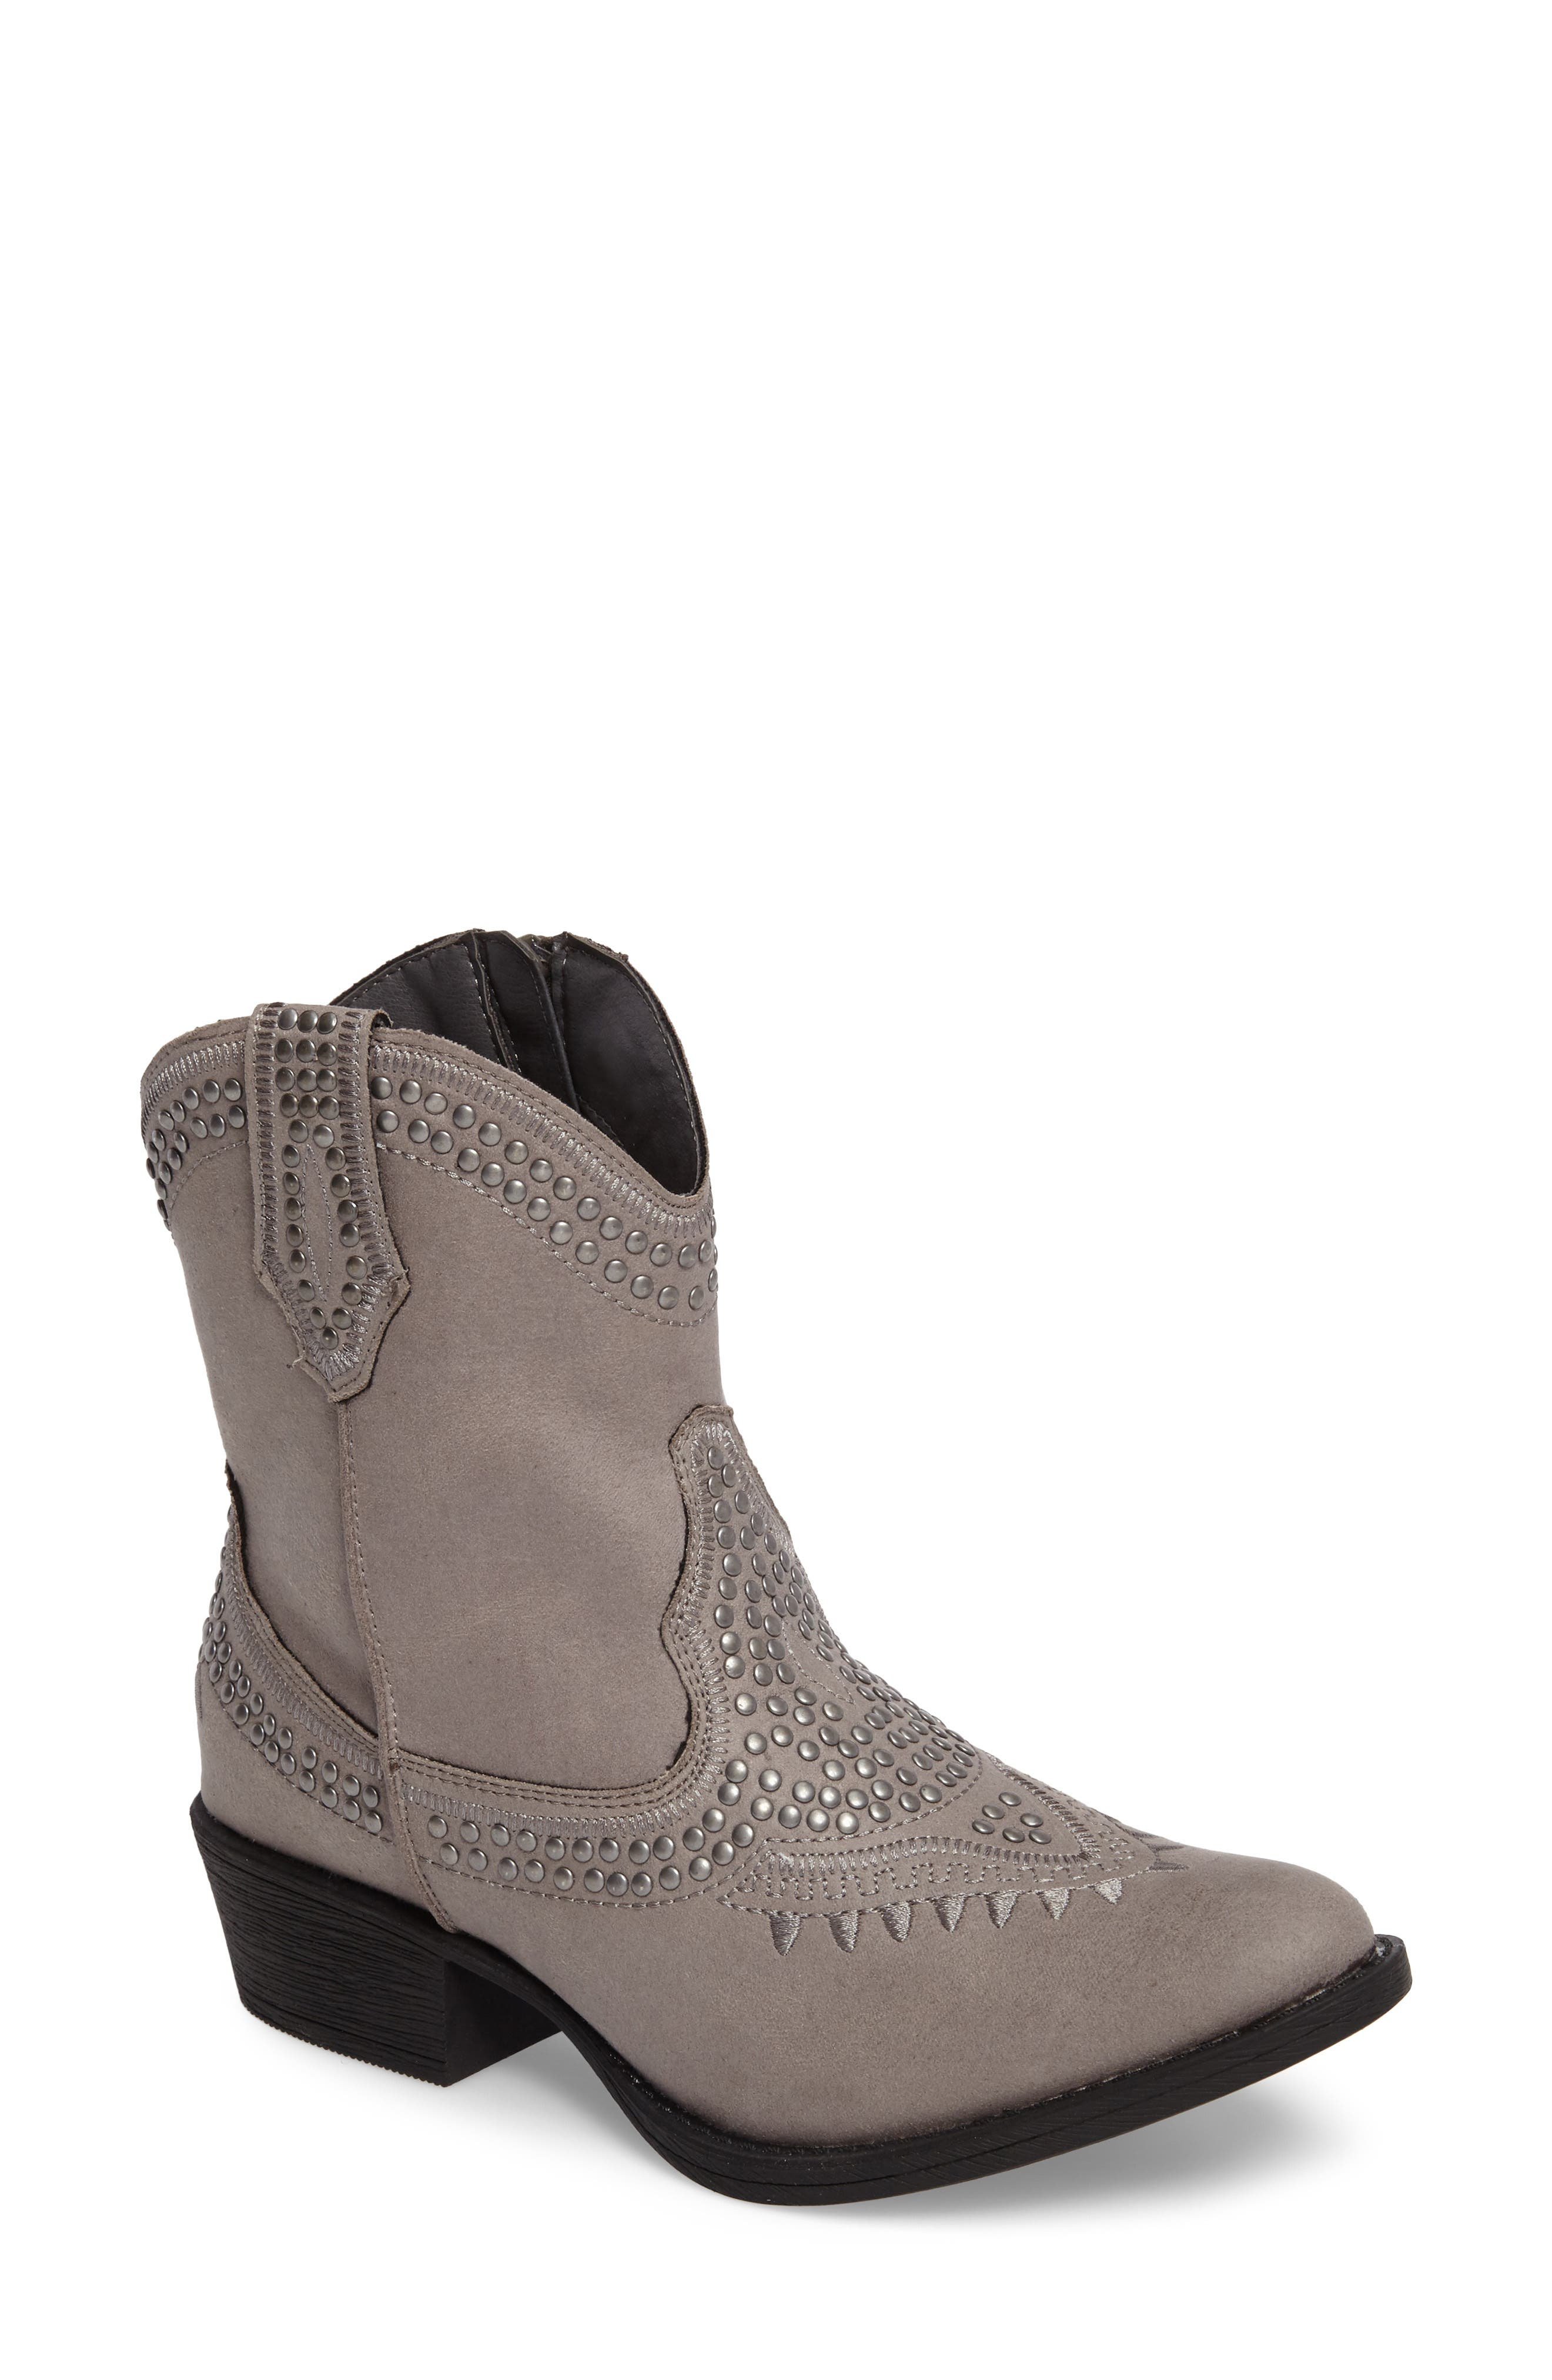 Amour Embellished Western Bootie,                         Main,                         color, 023